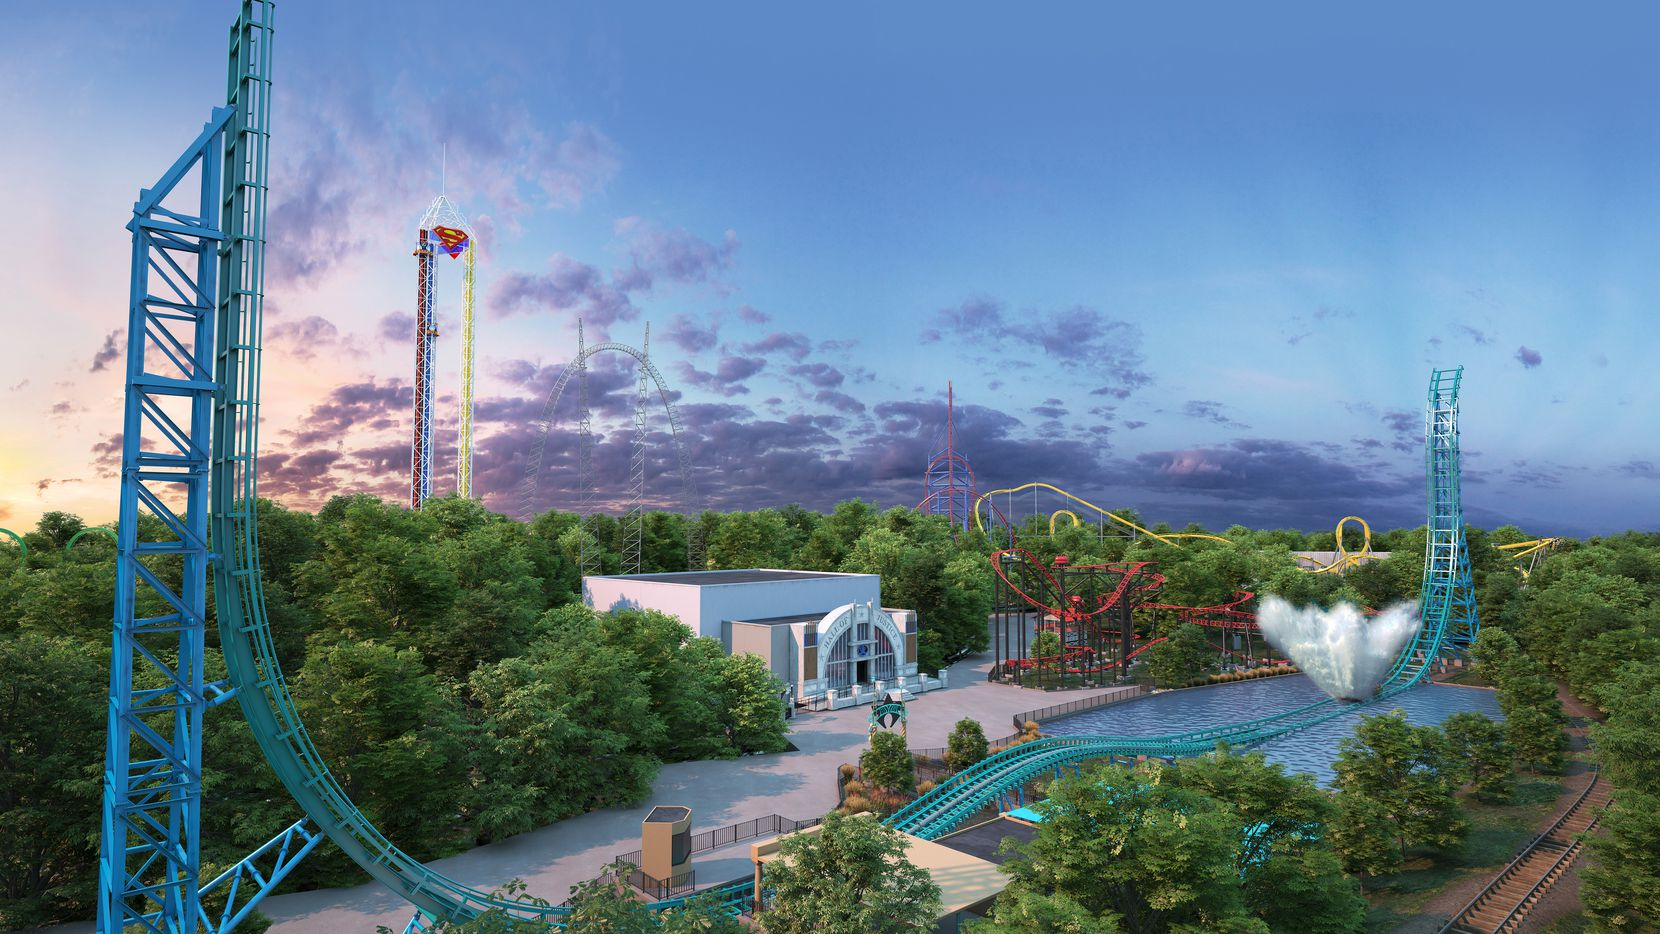 In 2020, Aquaman: Power Wave is expected to open at Six Flags Over Texas in Arlington.